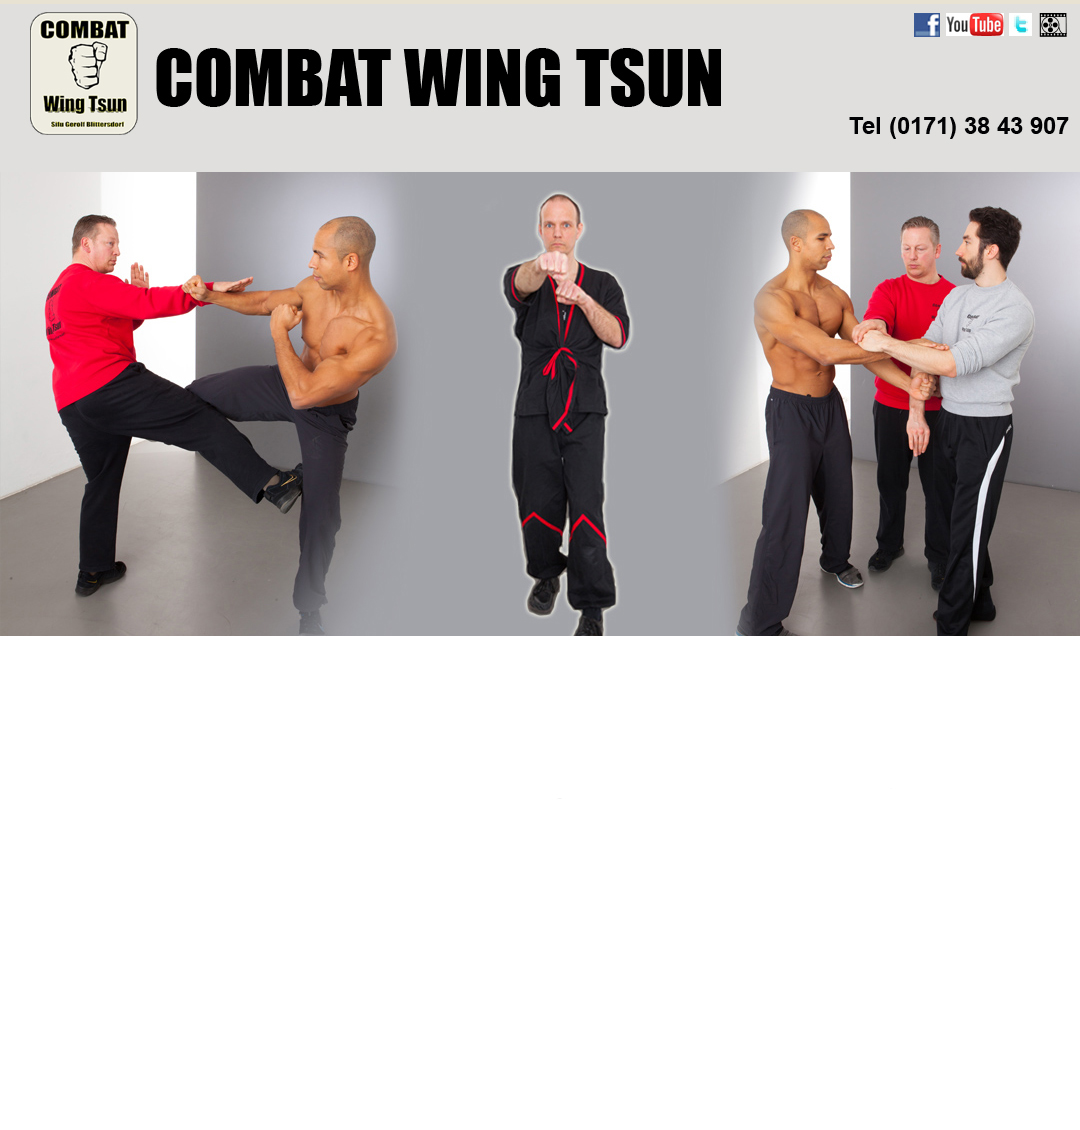 combat wing tsun wt training selbstverteidigung wt lernen. Black Bedroom Furniture Sets. Home Design Ideas